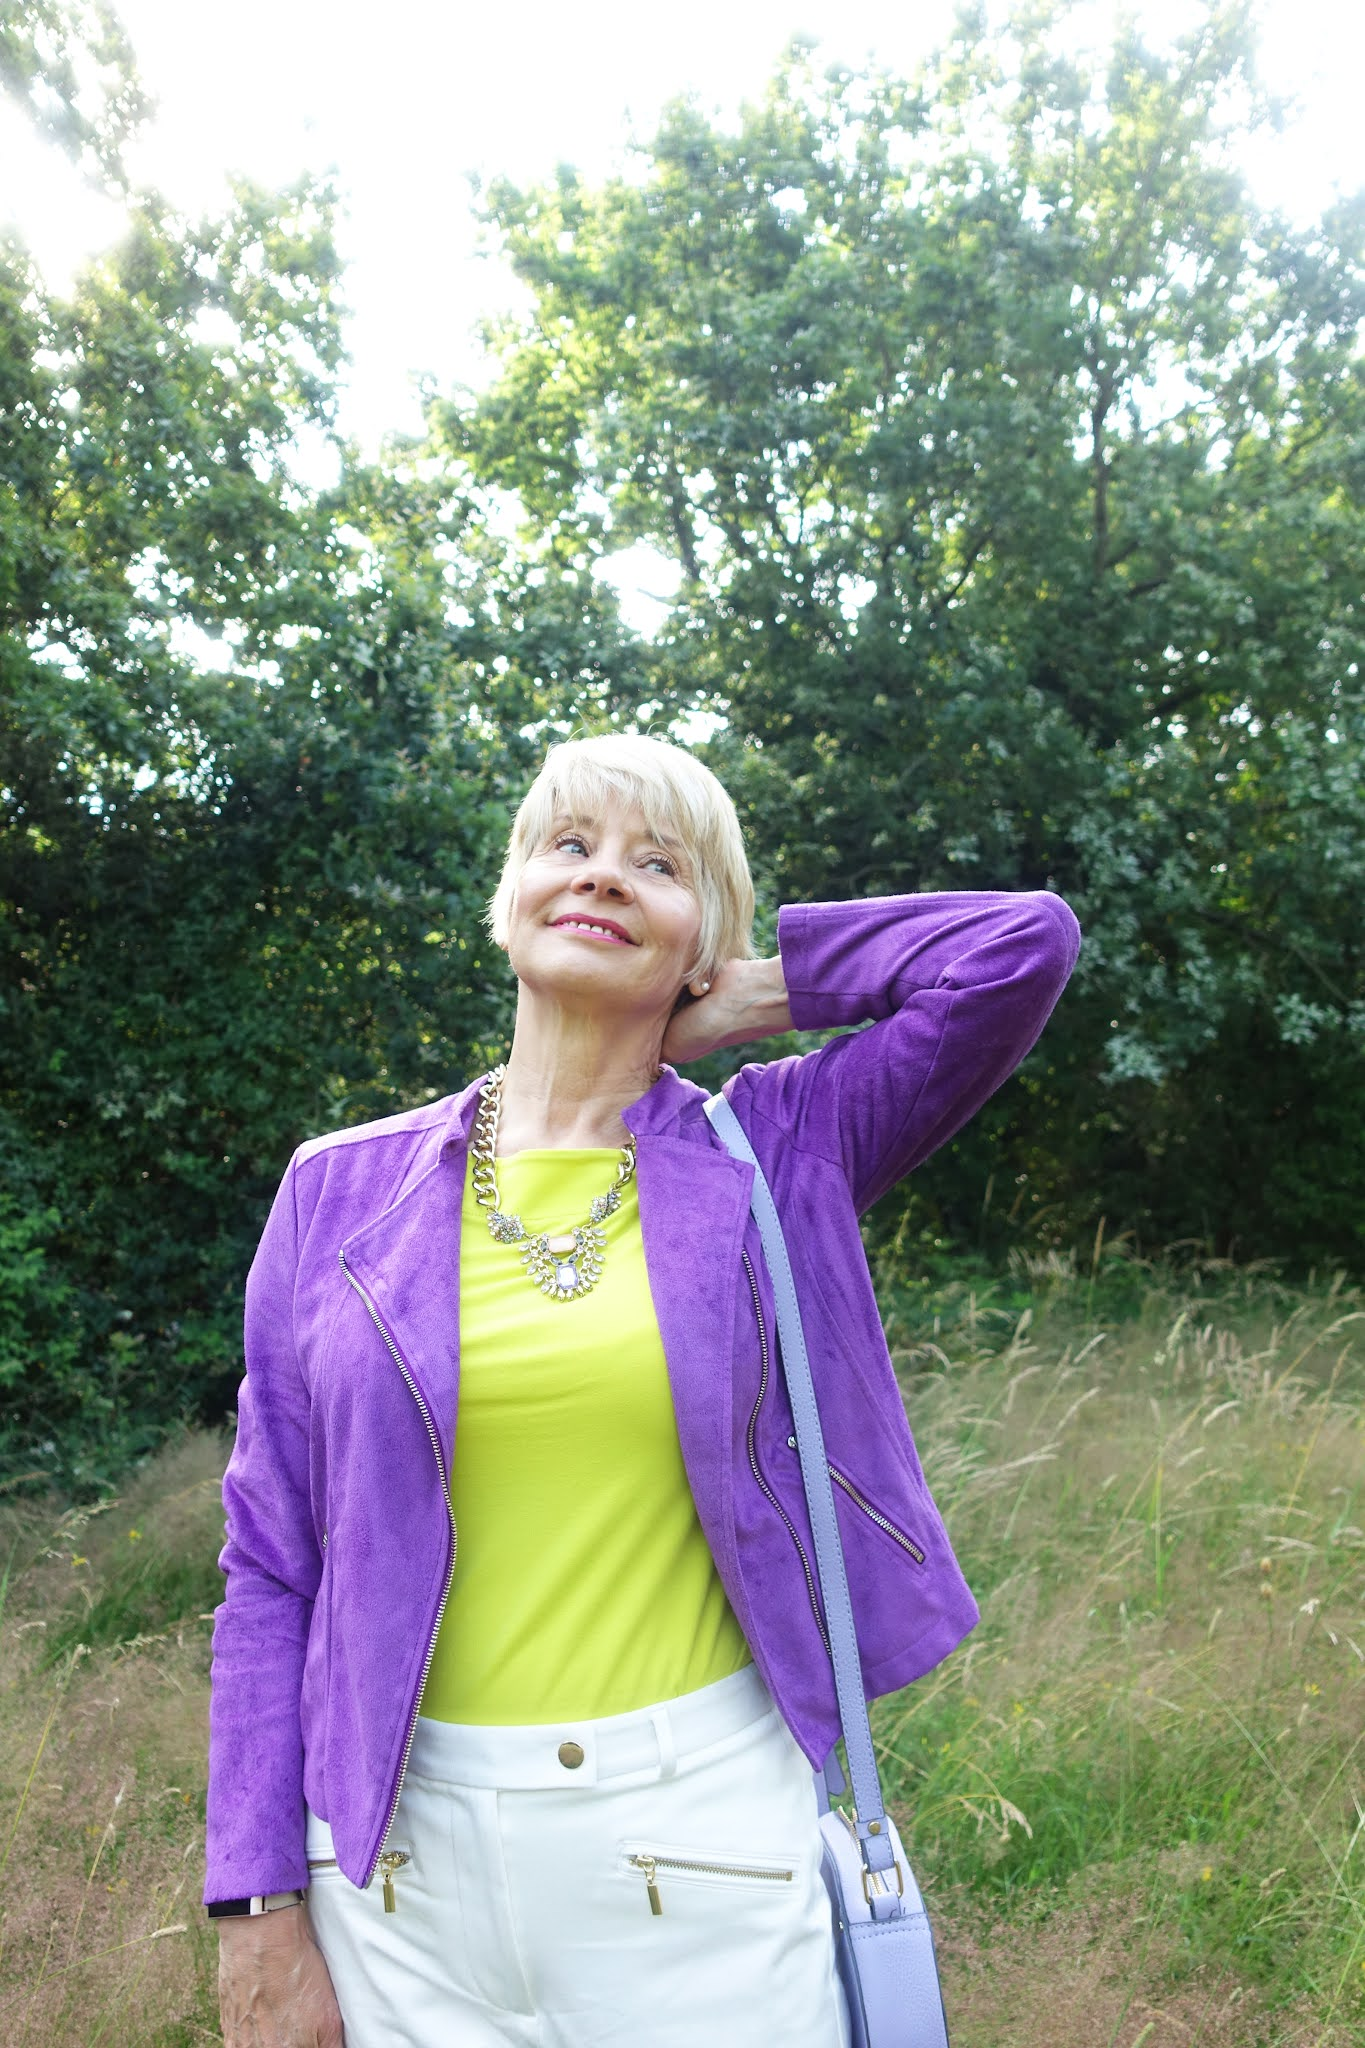 Is This Mutton blogger Gail Hanlon in Bright Violet Rachel jacket from Kettlewell for the latest Style Not Age Challenge, Jackets for July. Worn with a lime green tee and white ankle skimmer trousers